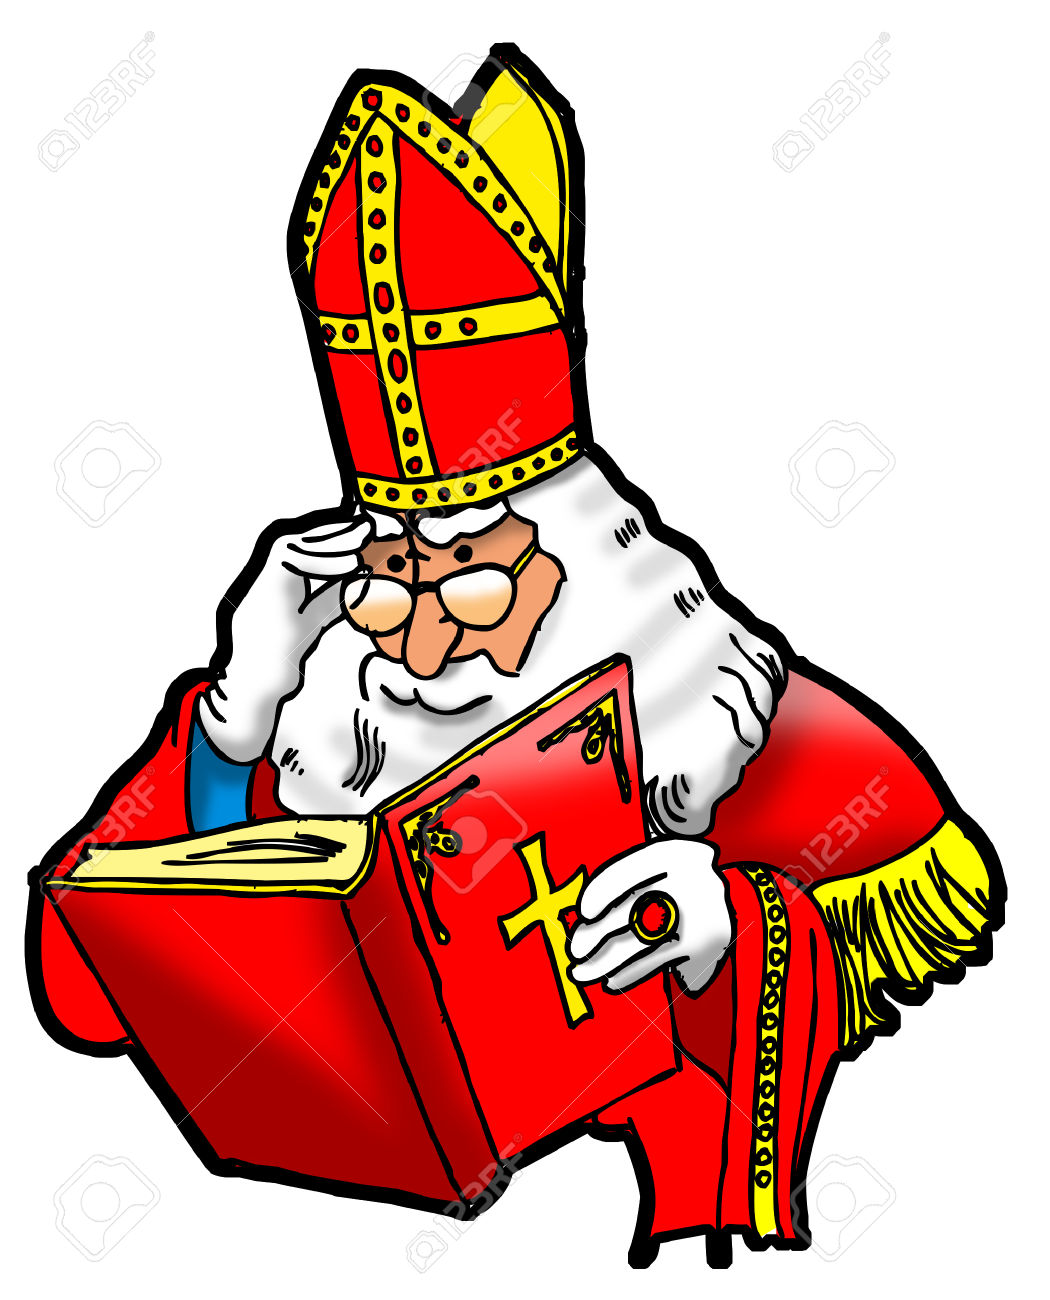 Sinterklaas Leest Royalty Free Cliparts, Vectors, And Stock.